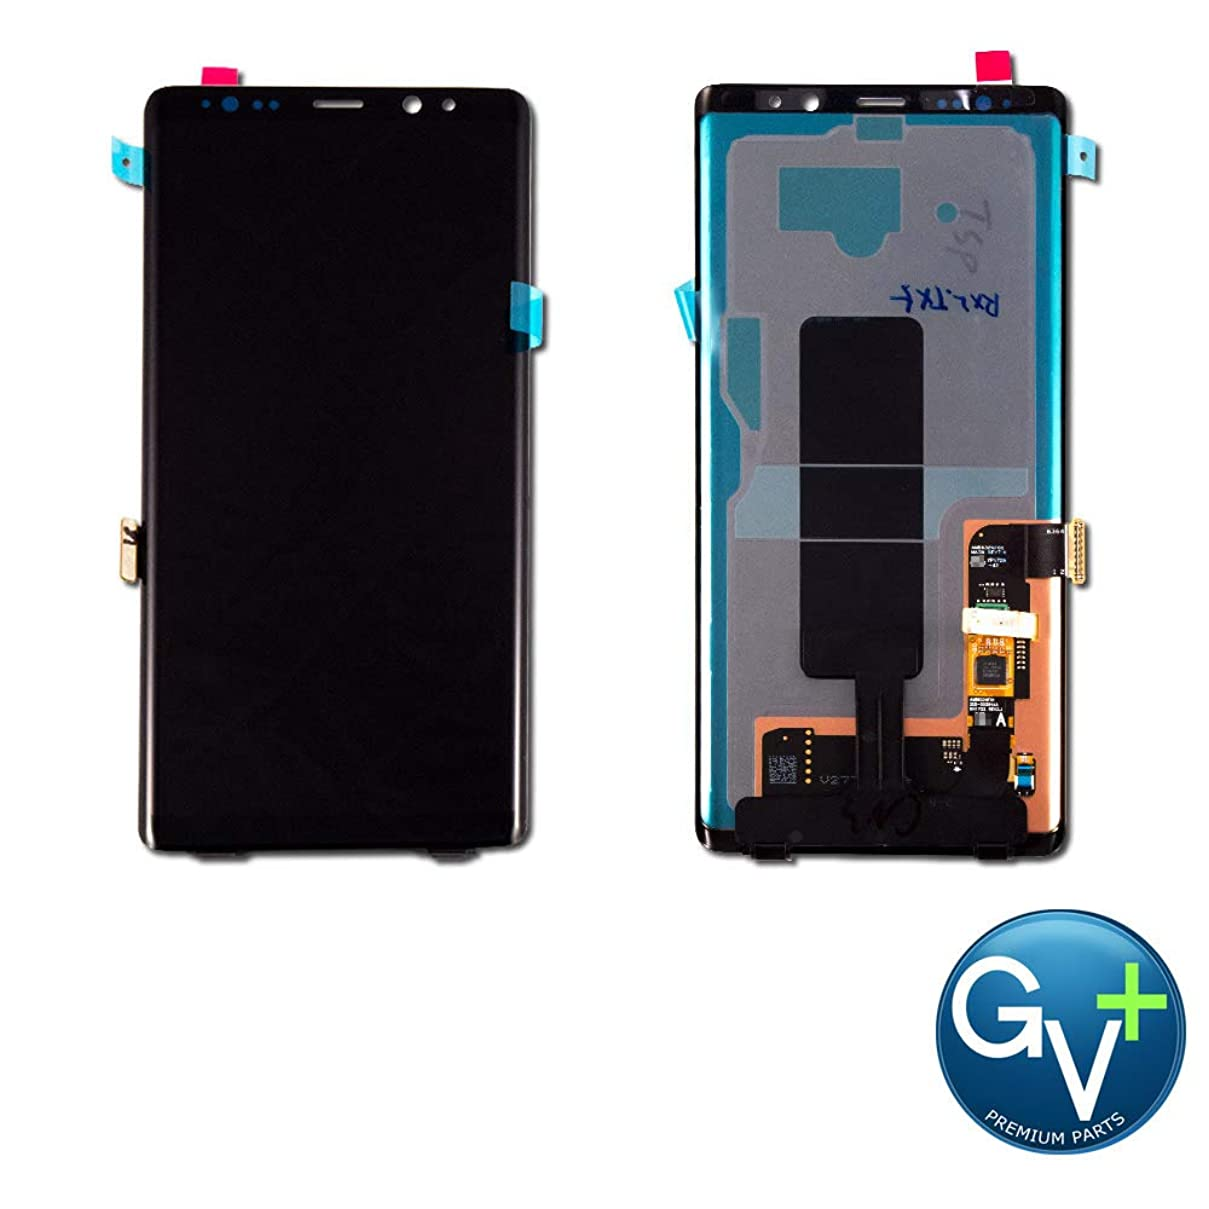 Group Vertical Replacement Screen AMOLED Digitizer Assembly Compatible with Samsung Galaxy Note 8 (SM-N950) (GV+ Performance)